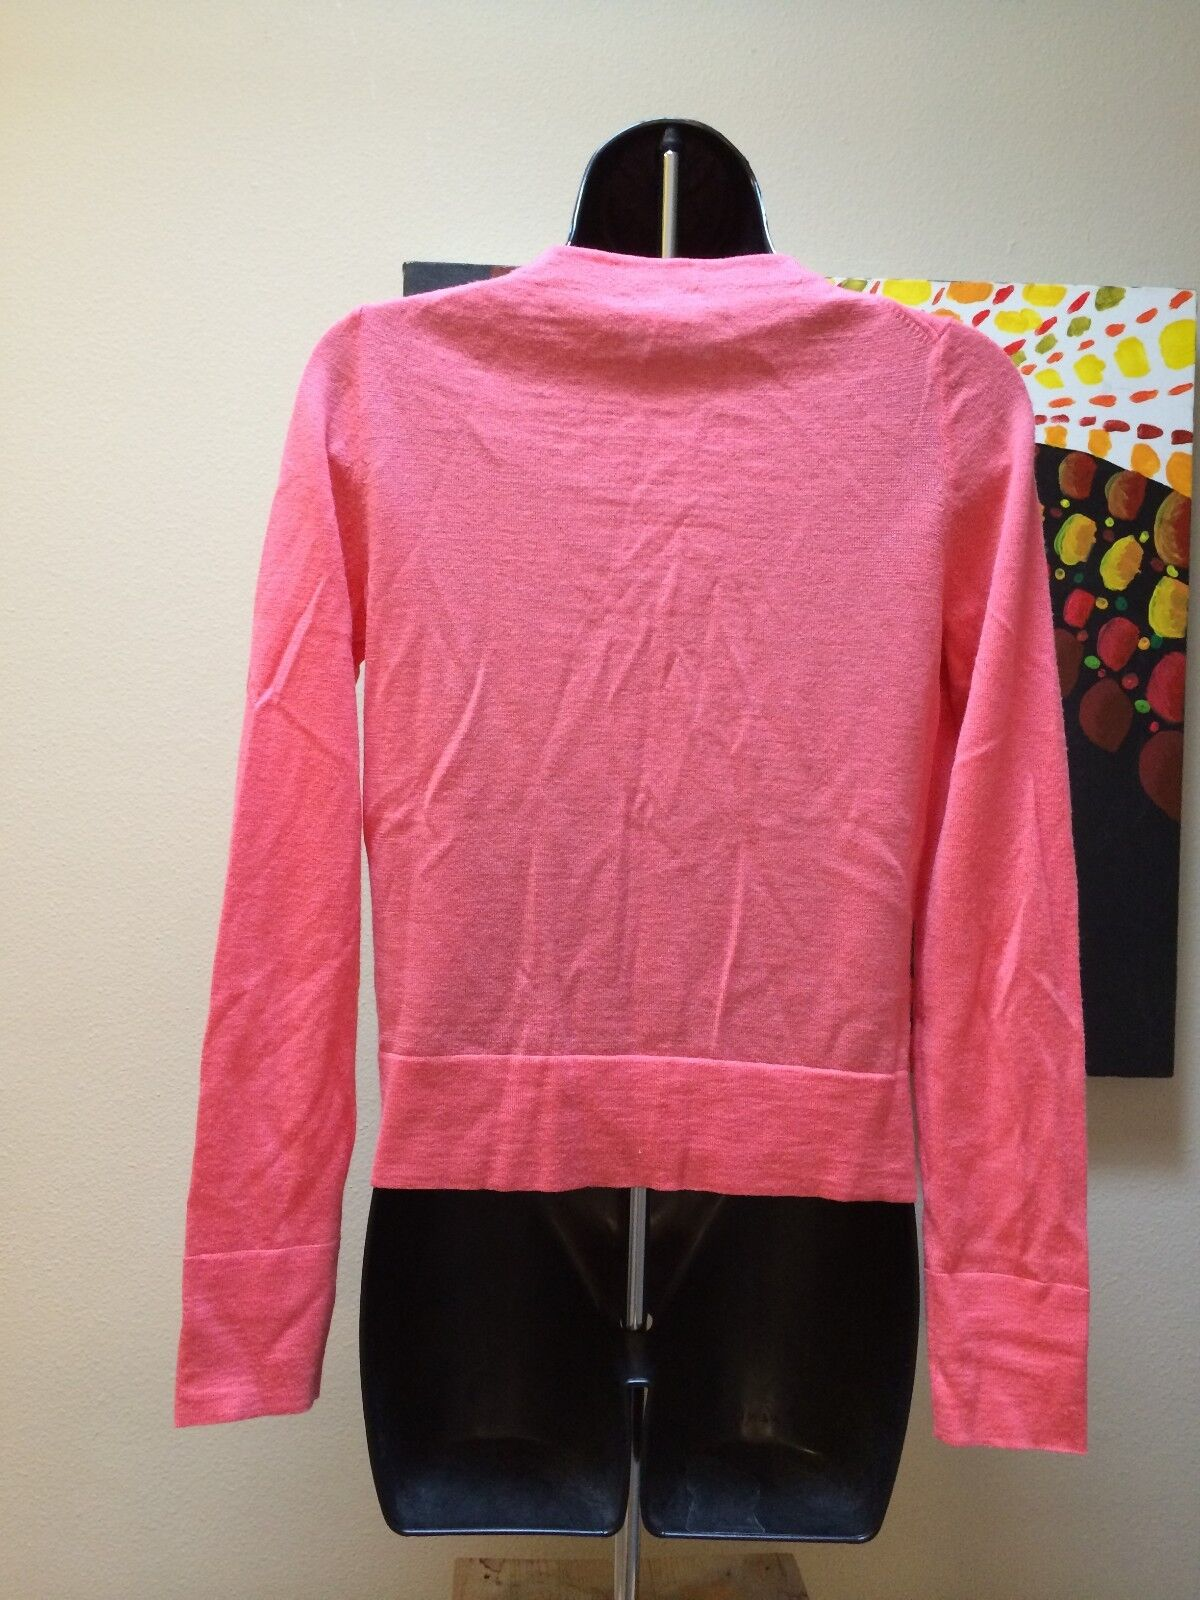 J.Crew coral pink Cardigan button up sweater top womens Sz S ...